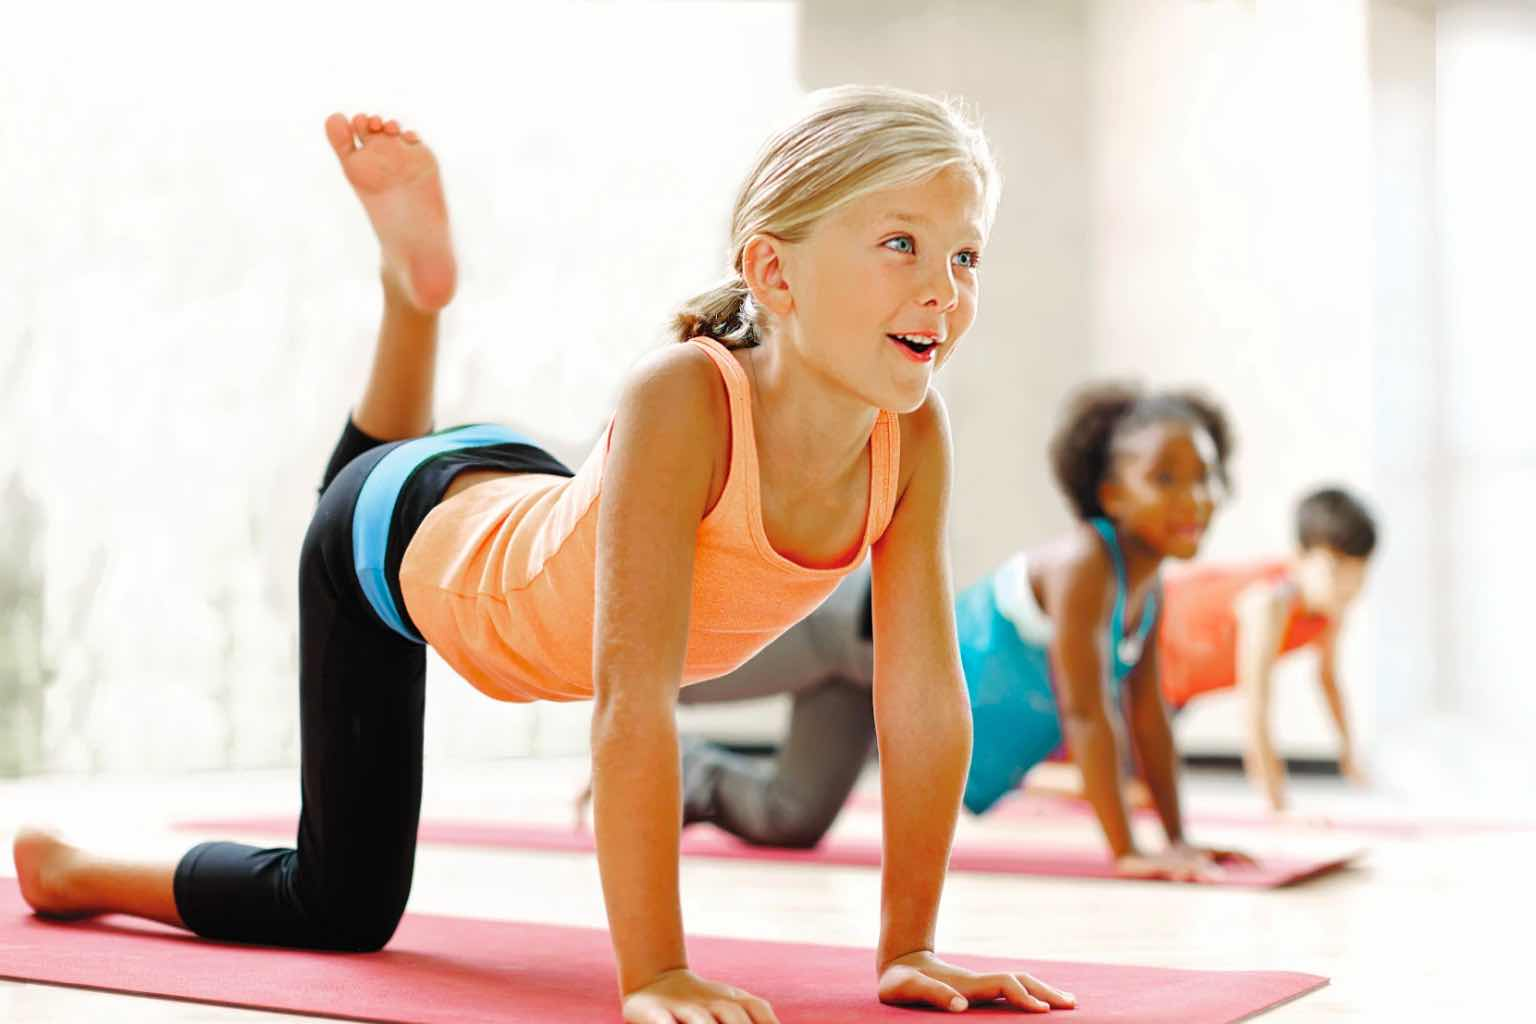 a young girl smiling while doing yoga